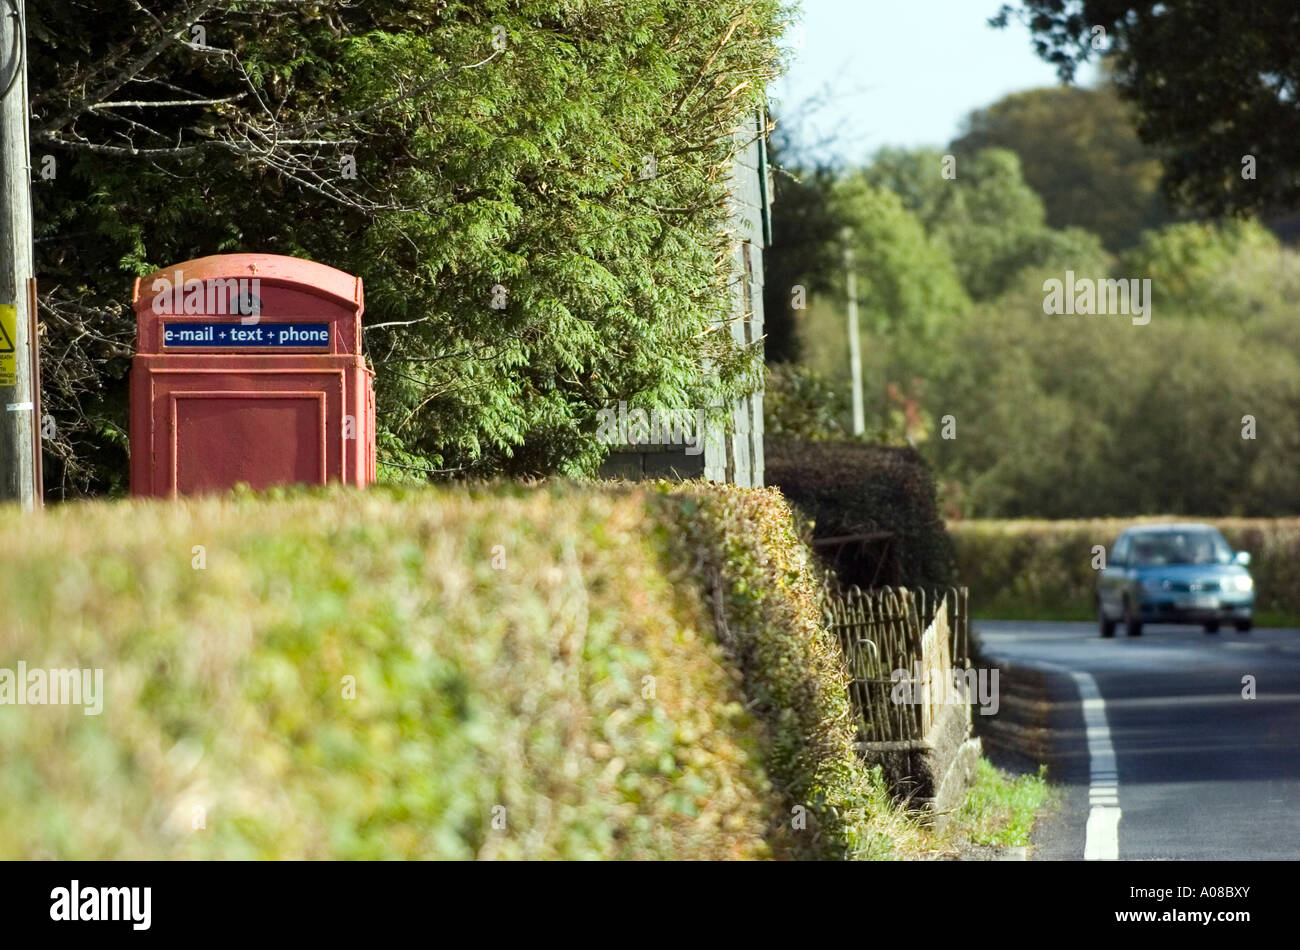 Old style BT phonebox with email and text facilities on the side of the road in the remote countryside near Dolgellau, UK. - Stock Image